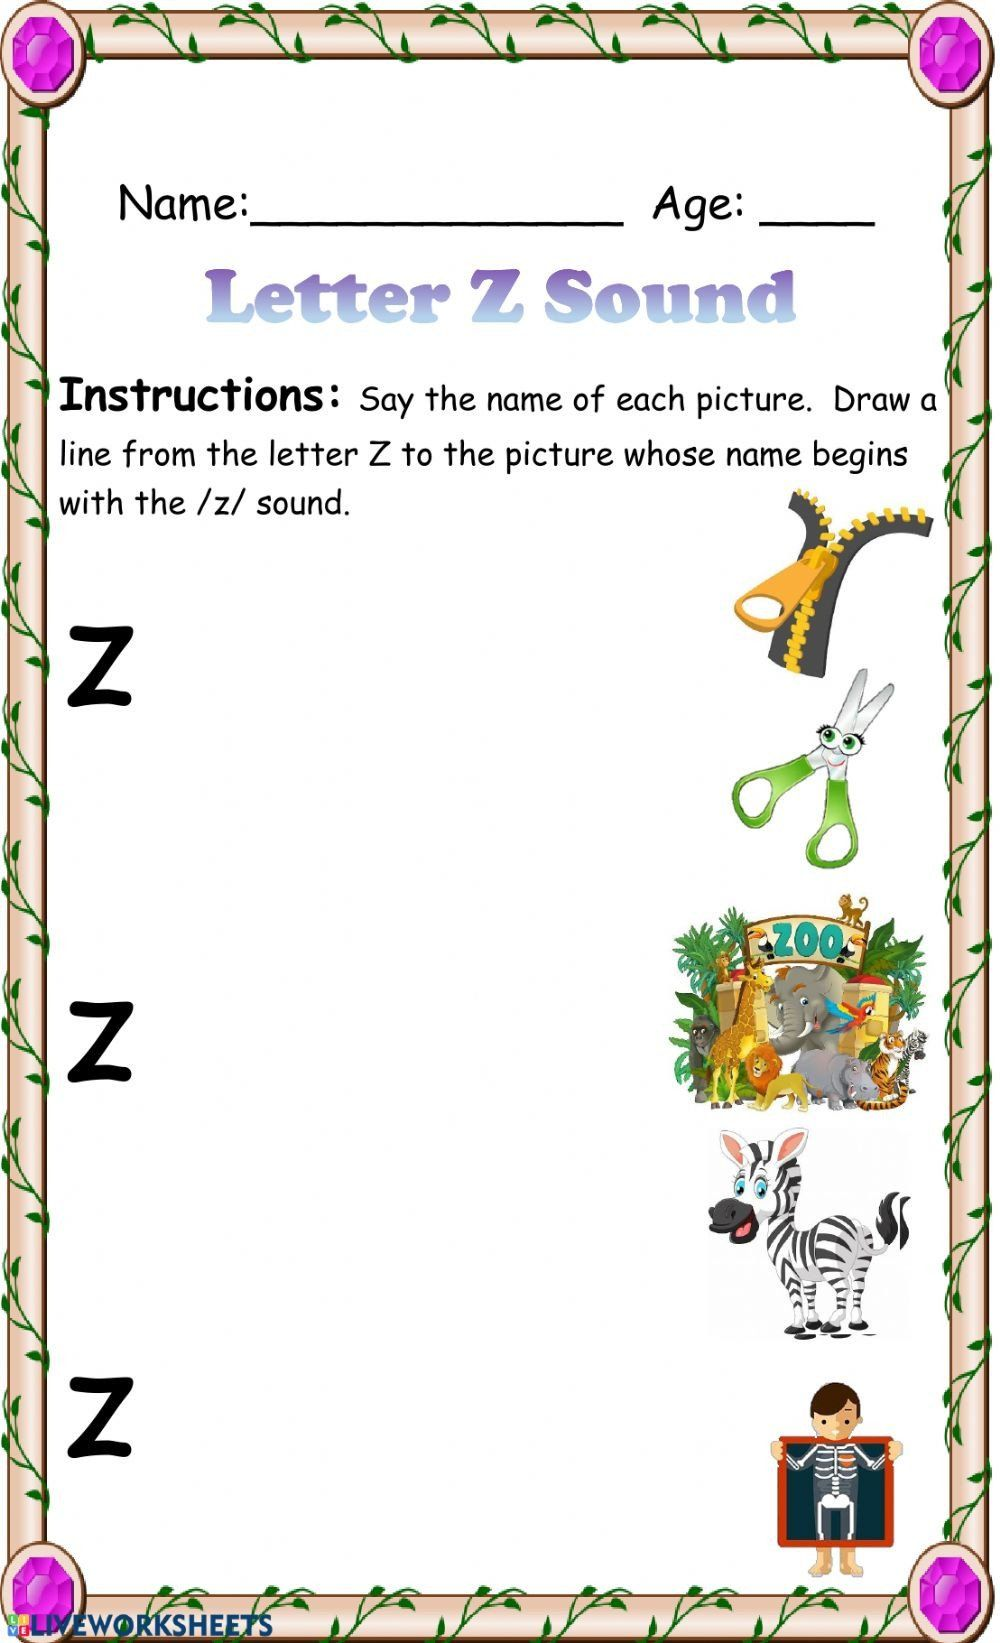 Letter sound Recognition Worksheets Letter Z sound